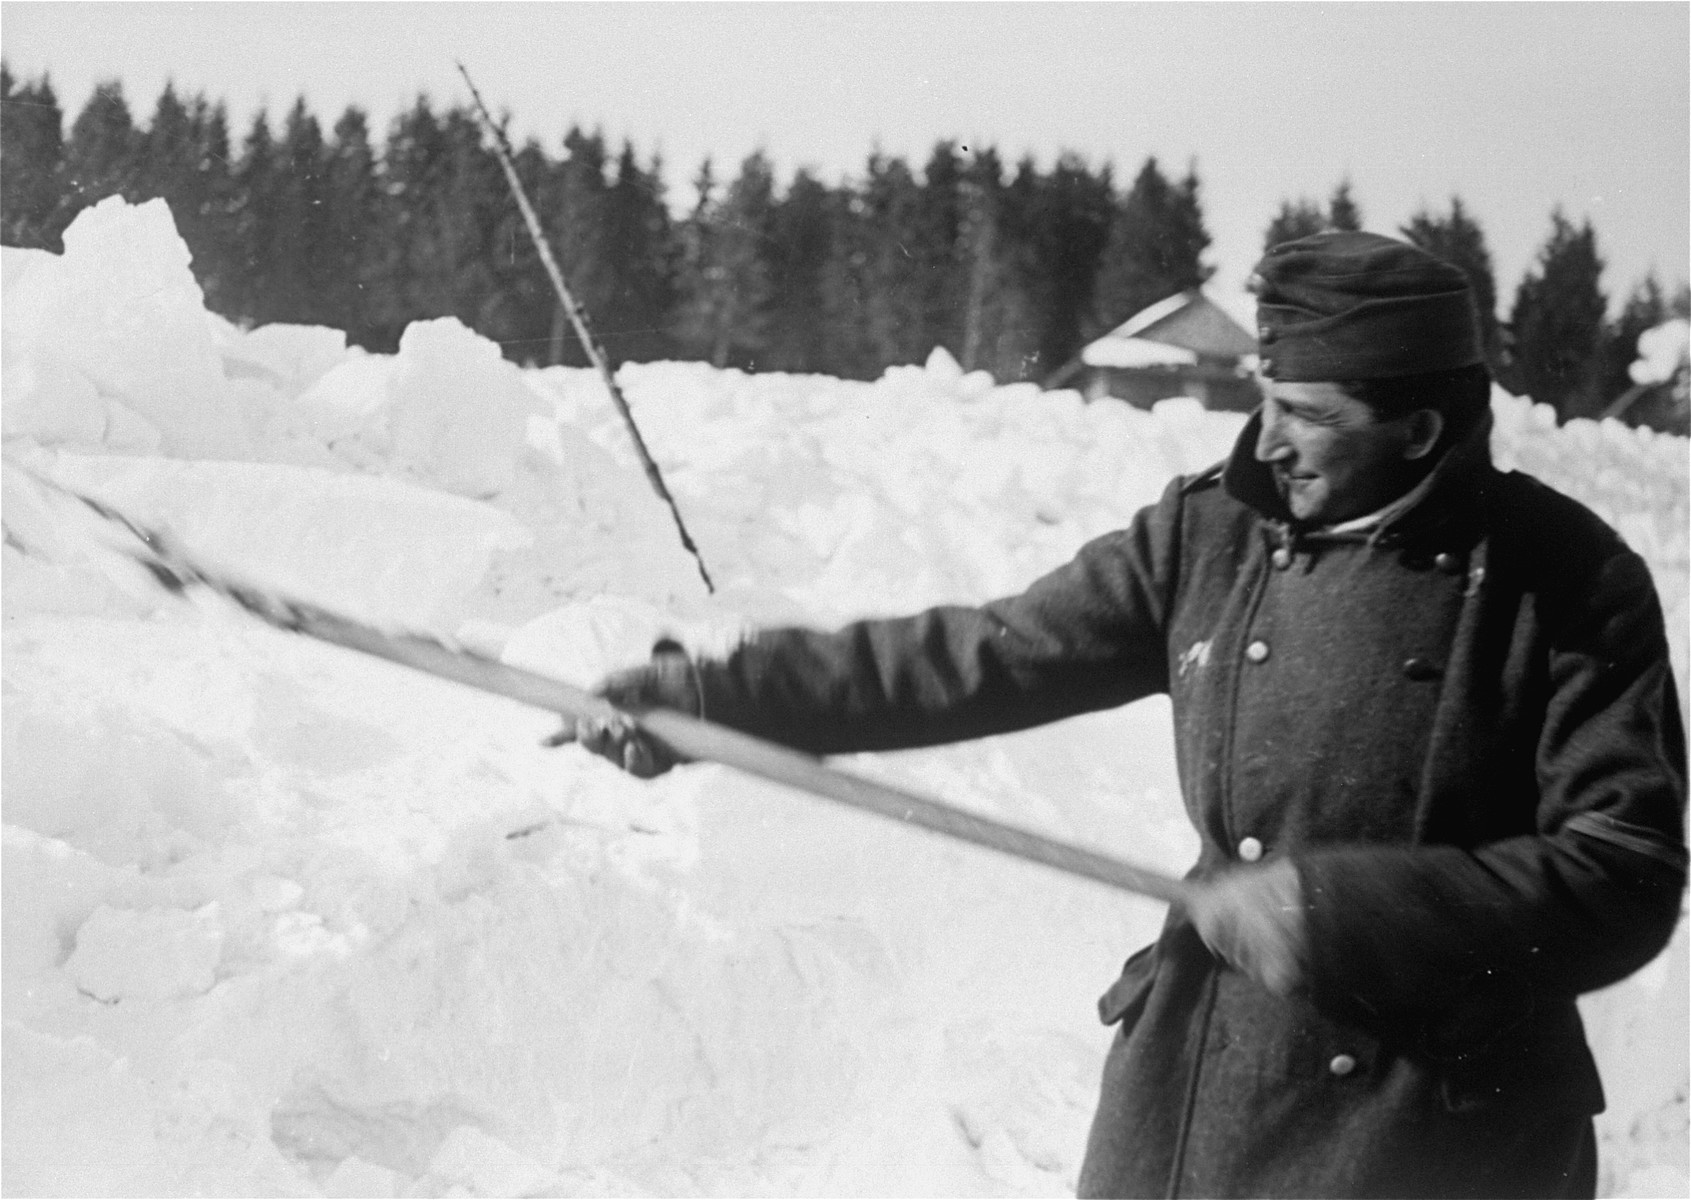 A Jewish conscript in Company 108/57 of the Hungarian Labor Service clearing snow from a road.